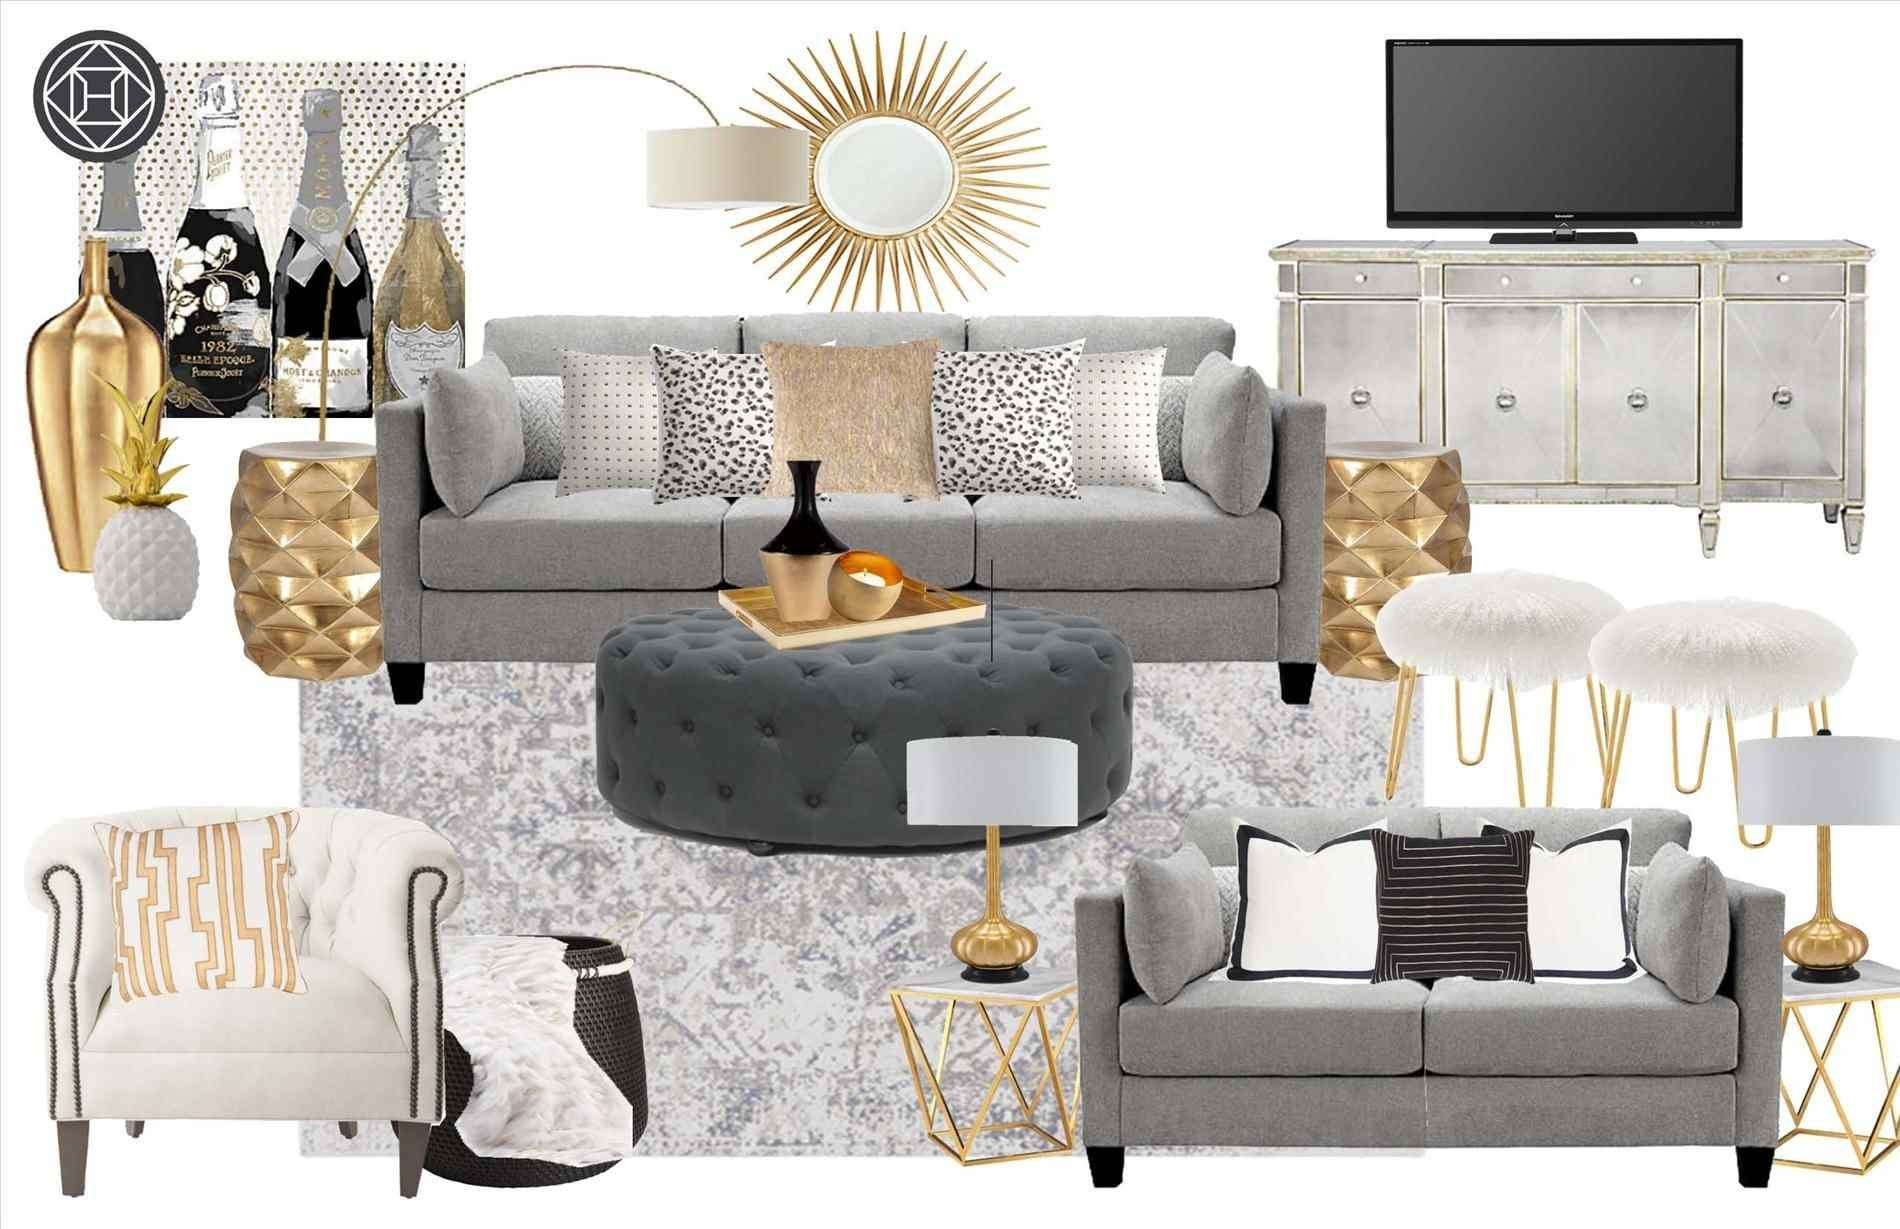 32+ Grey and gold living room ideas information